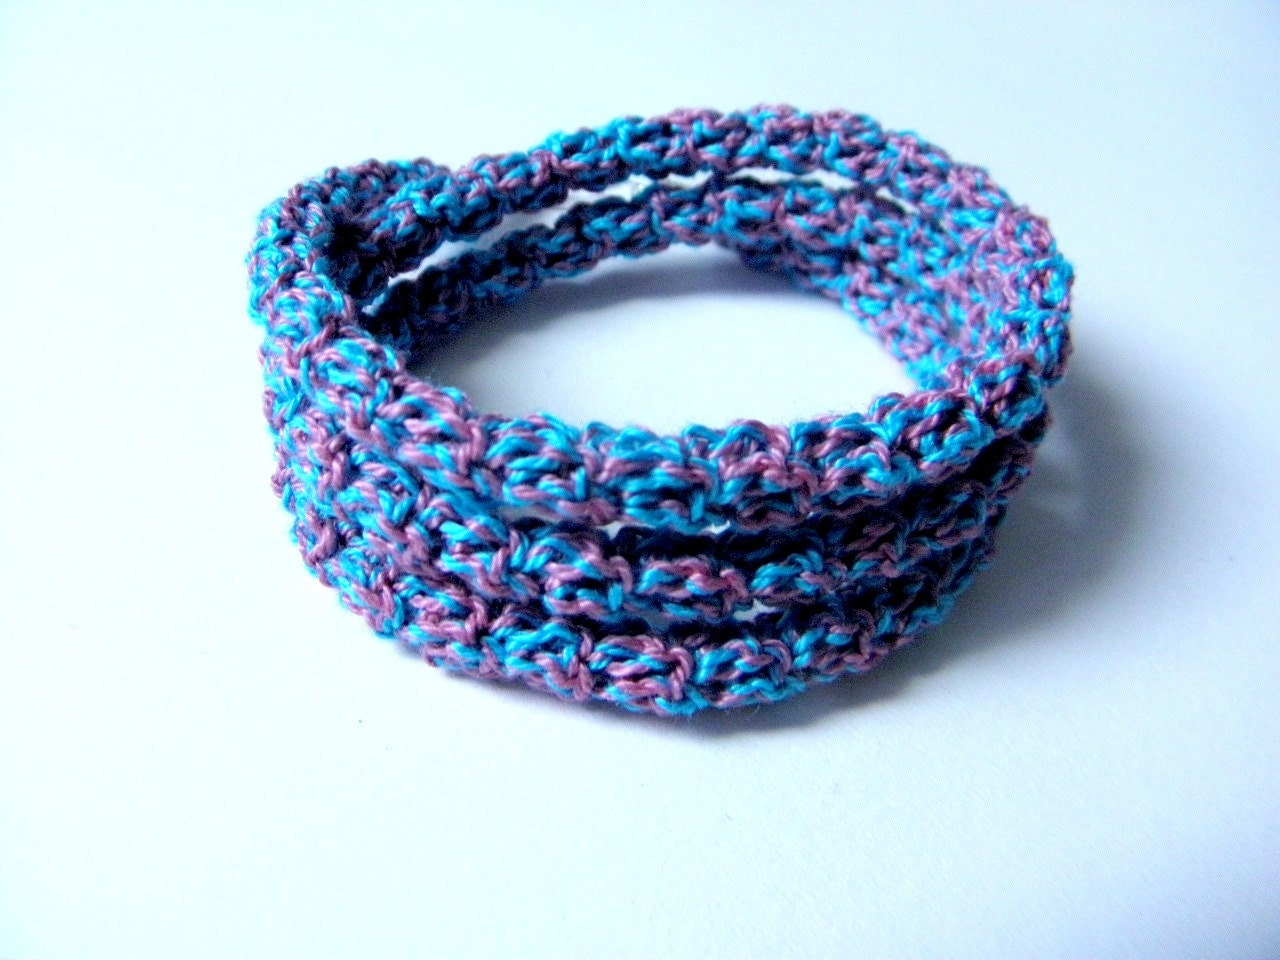 Crochet bracelet made of cotton blue and pink color